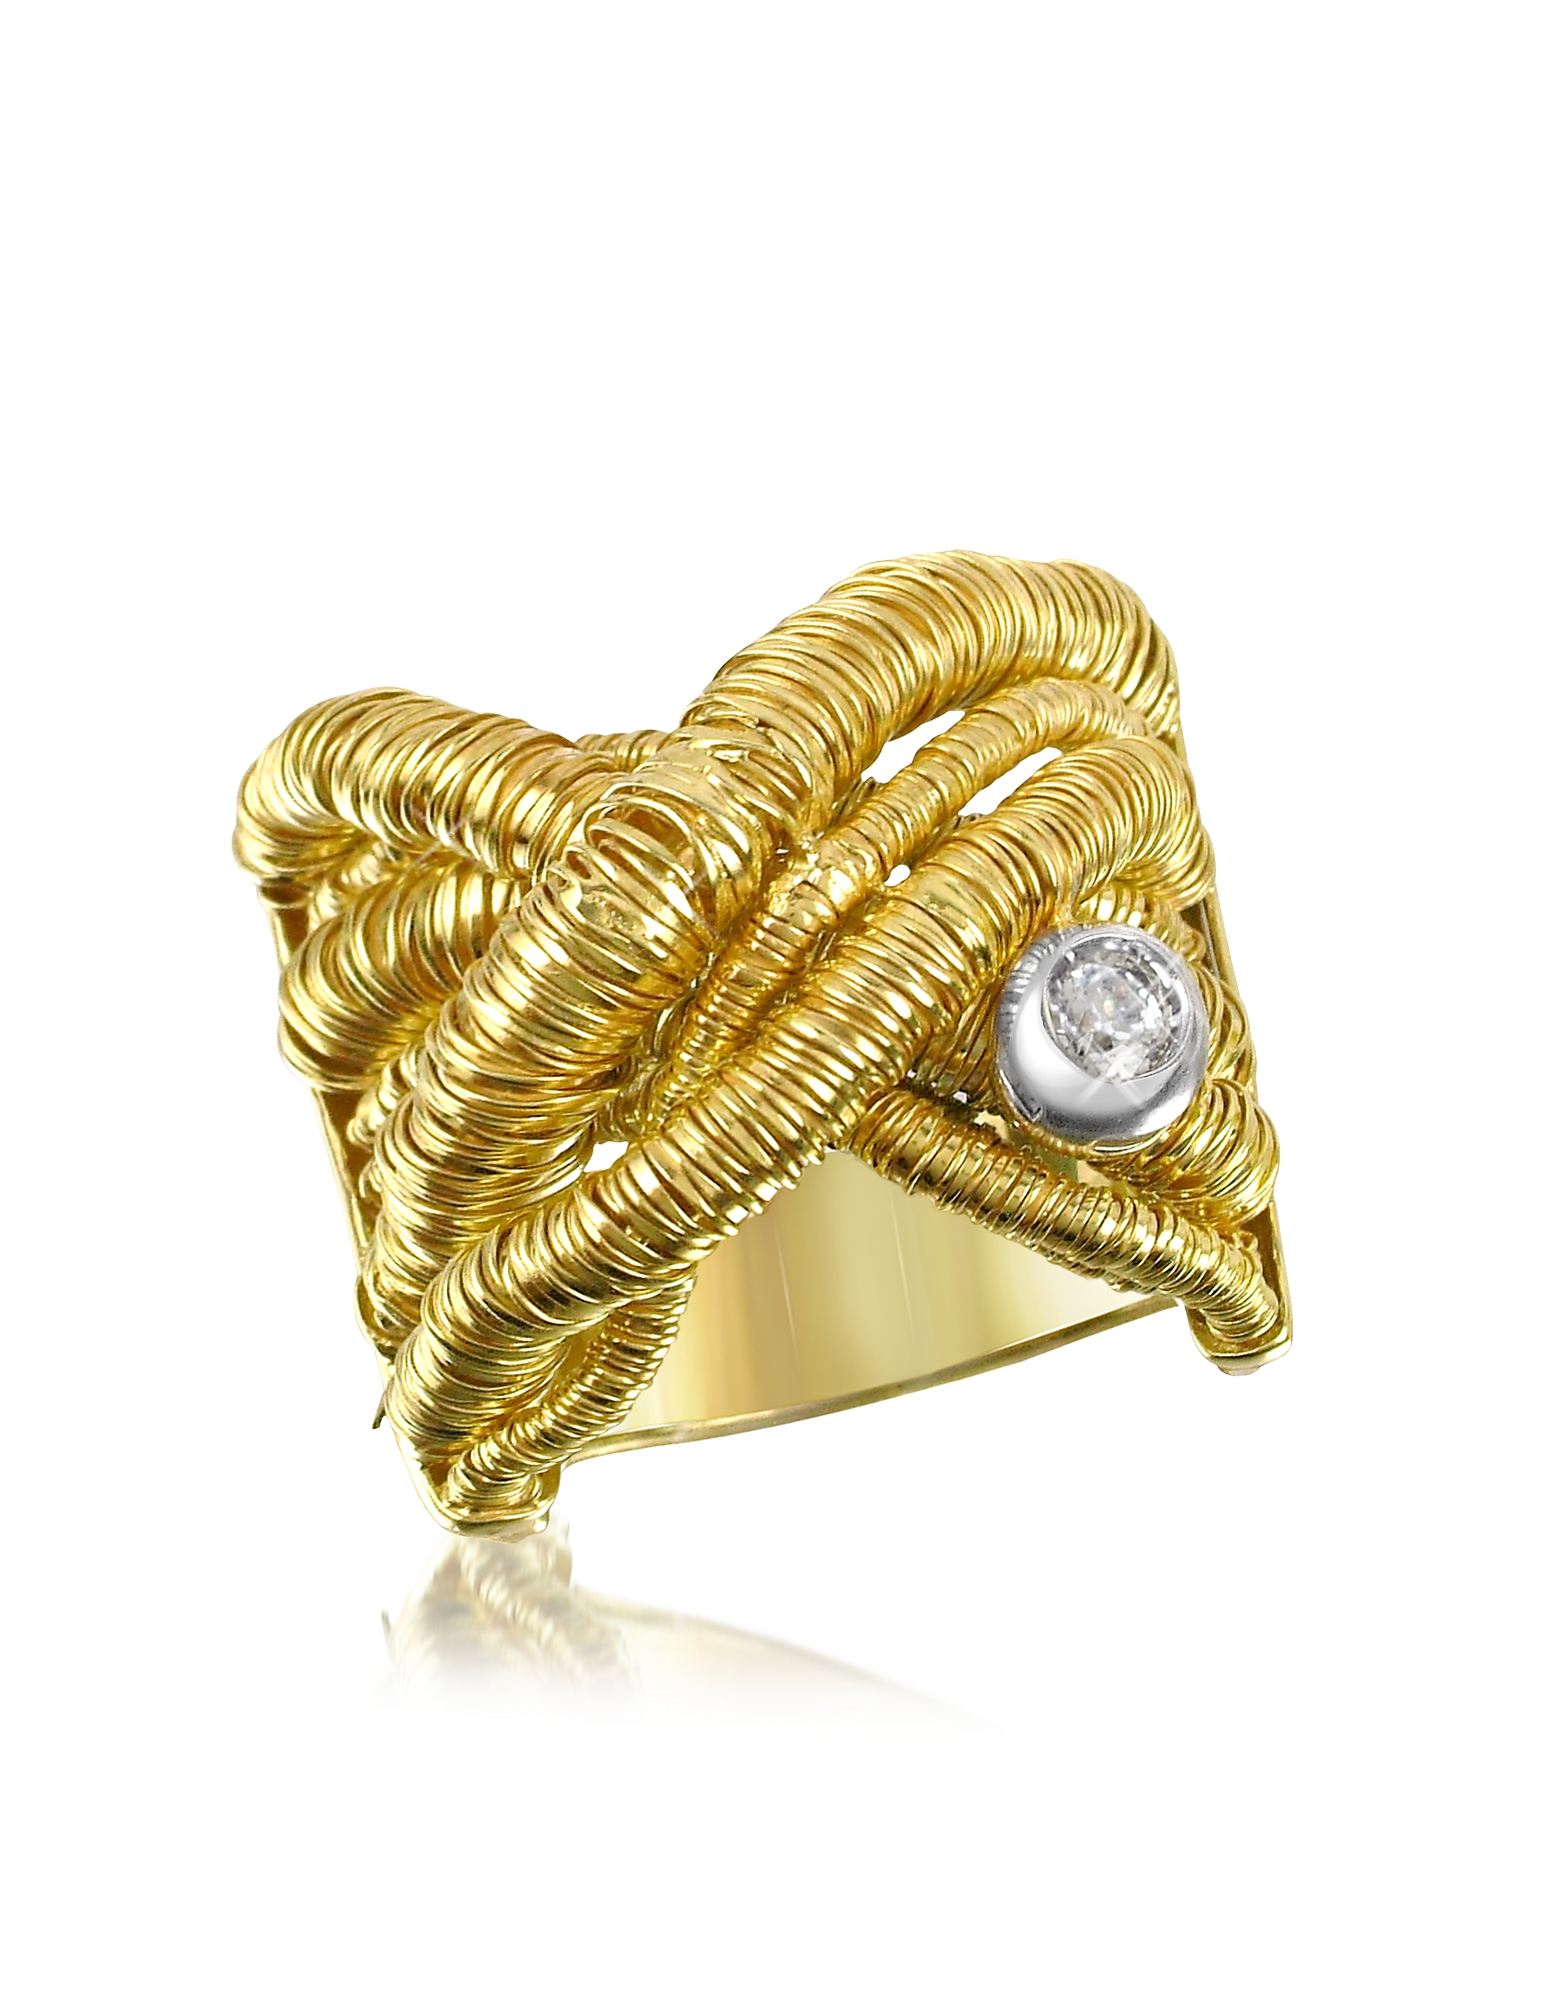 Orlando Orlandini Rings, Capriccio - Diamond 18K Yellow Gold Crossover Ring